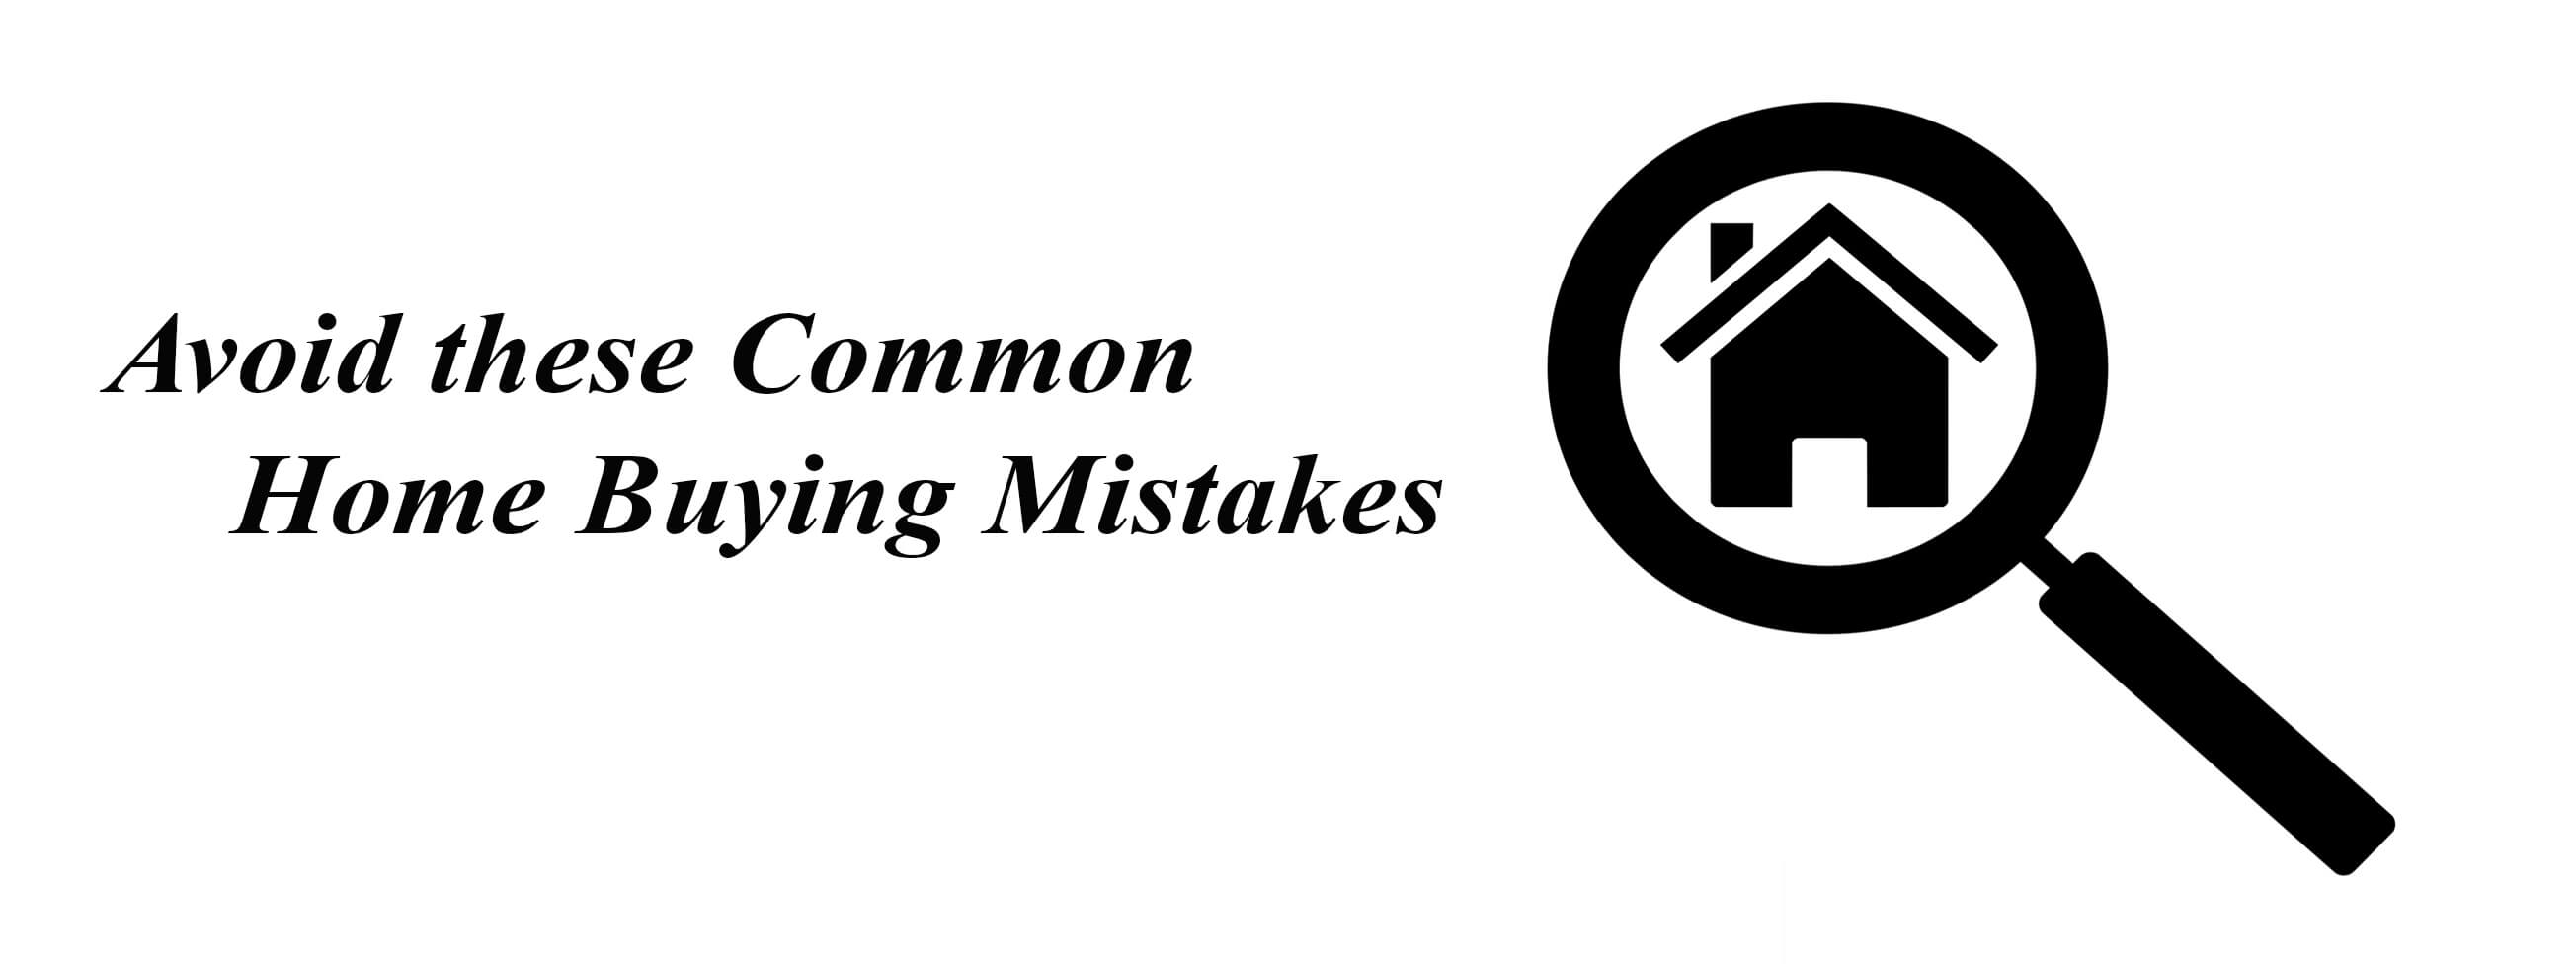 Home Buying Mistakes First-time Homebuyers Must Avoid